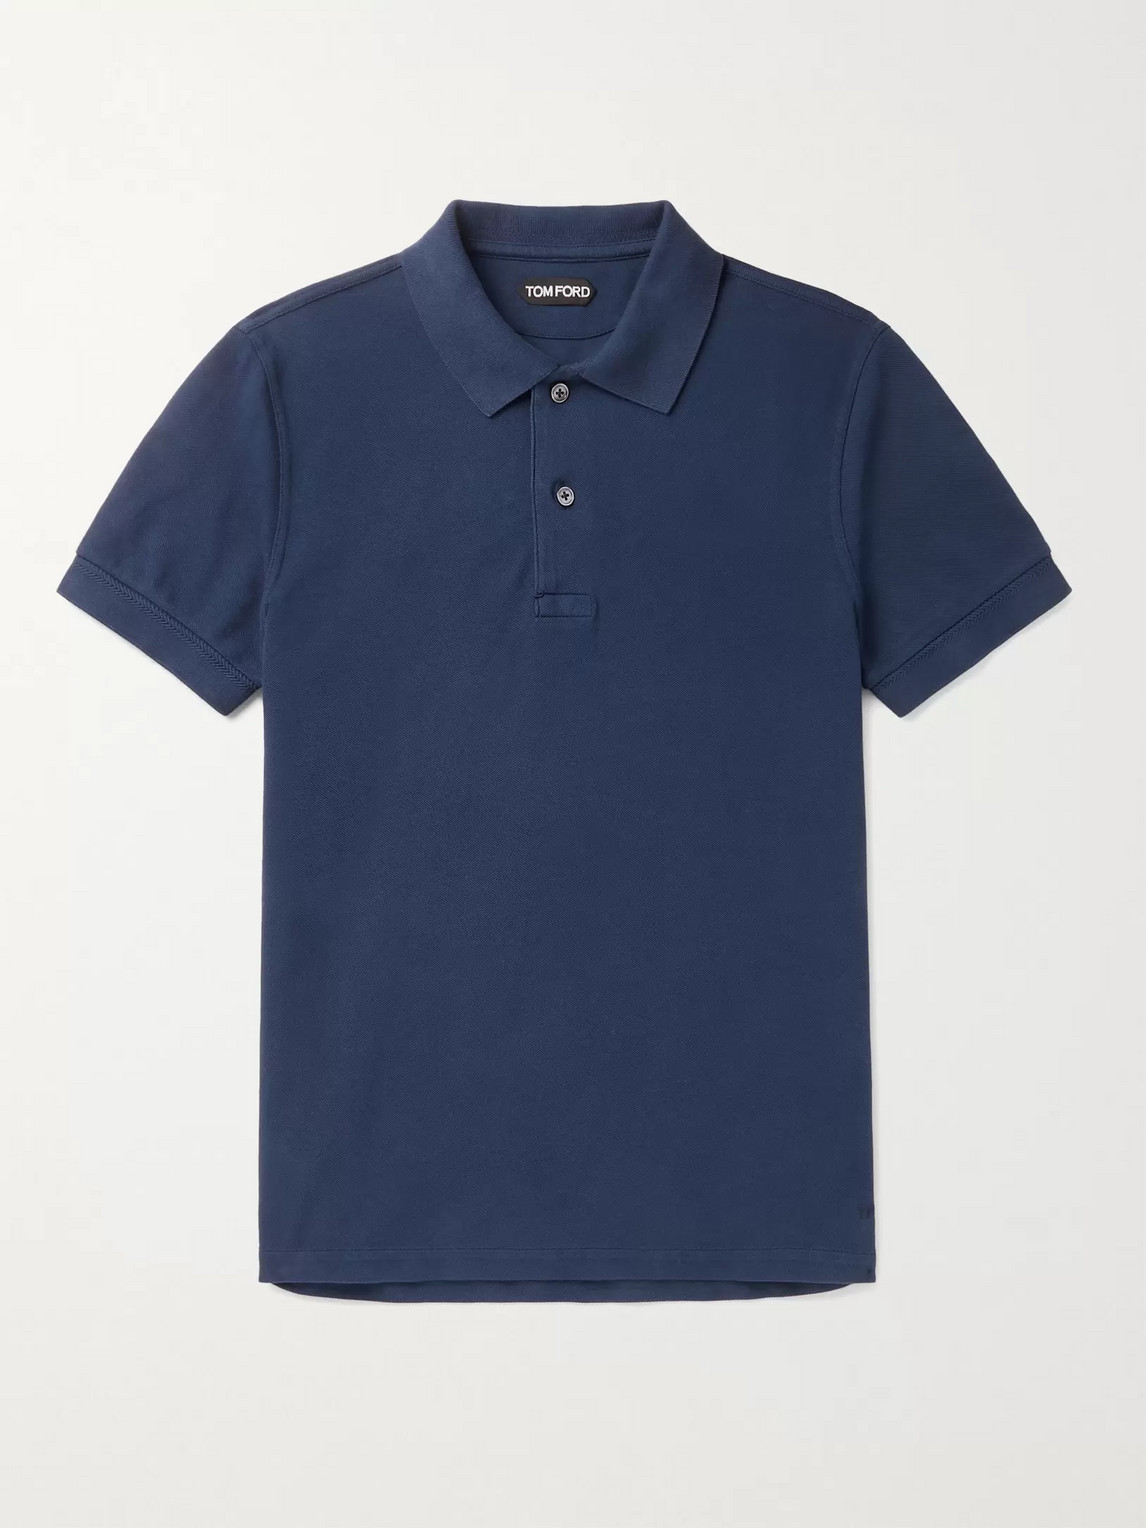 Tom Ford GARMENT-DYED COTTON-PIQUÉ POLO SHIRT